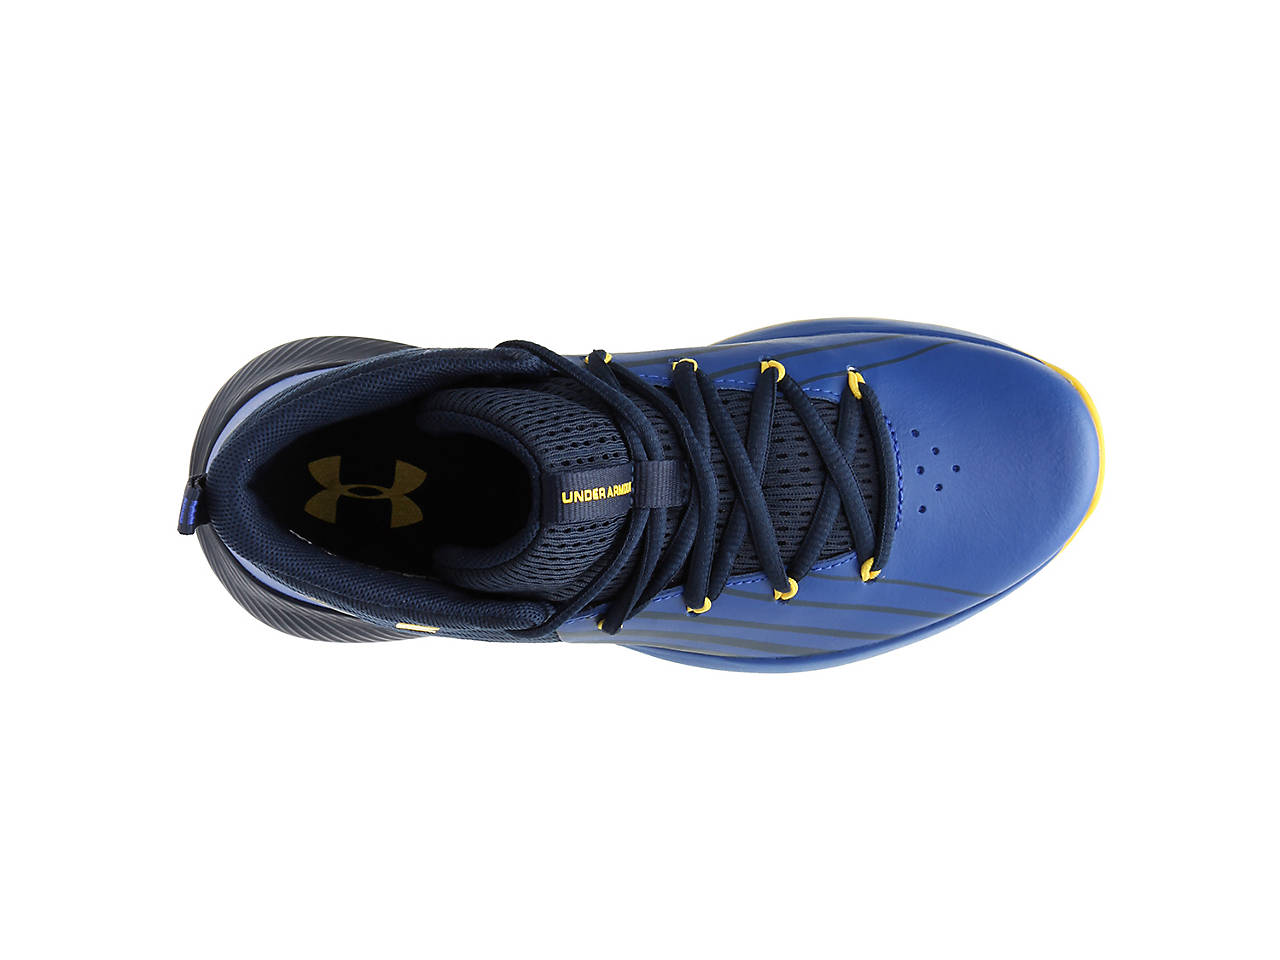 a1005d3a74ed Under Armour Lockdown 3 GS Youth Basketball Shoe Kids Shoes